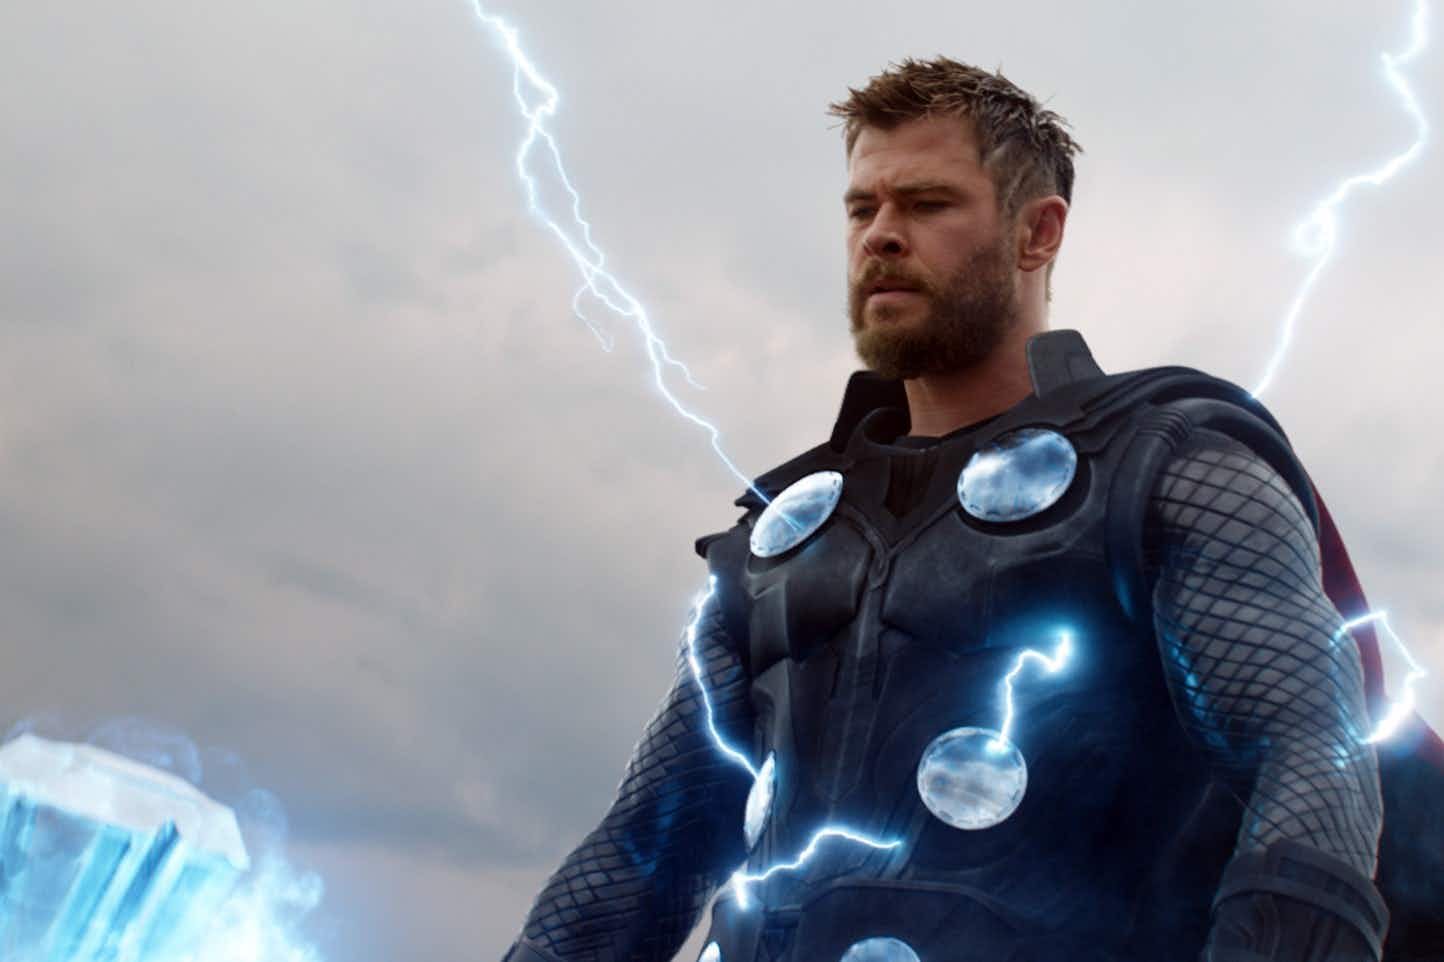 Avengers' fans really want to go to Thor's homeland - here's where it was filmed